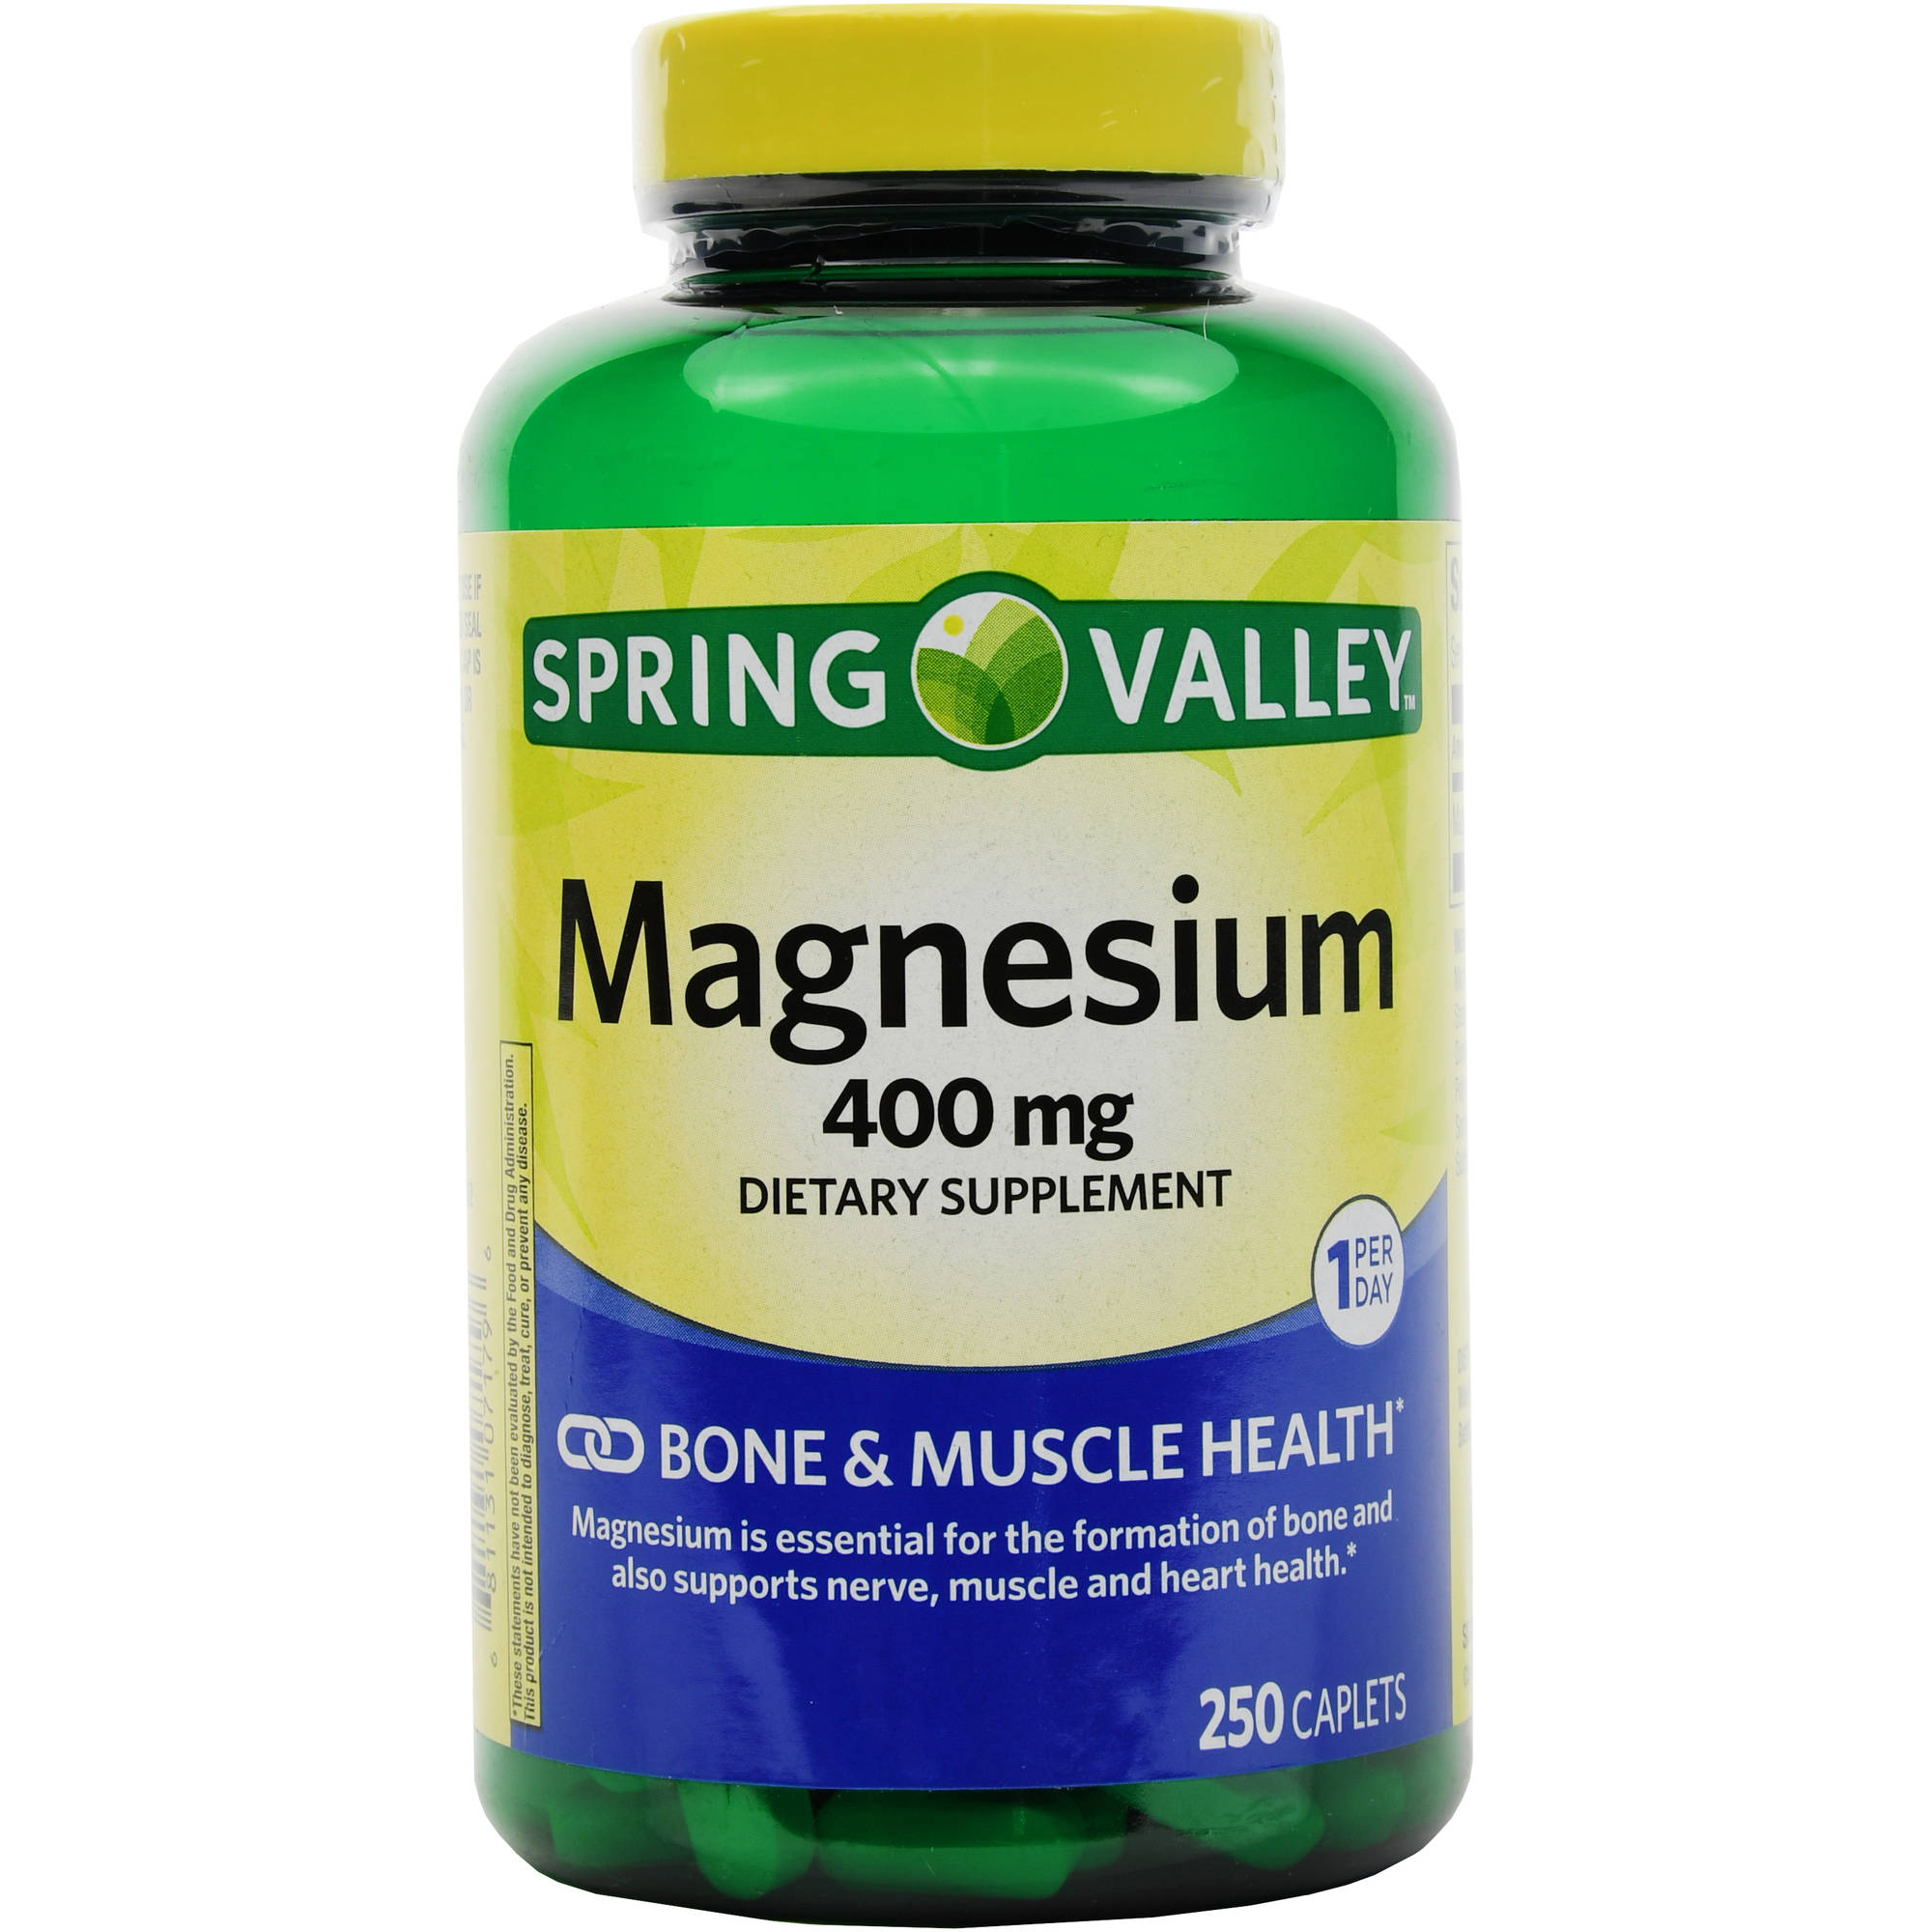 Spring Valley Magnesium Dietary Supplement Tablets, 400mg, 250 count